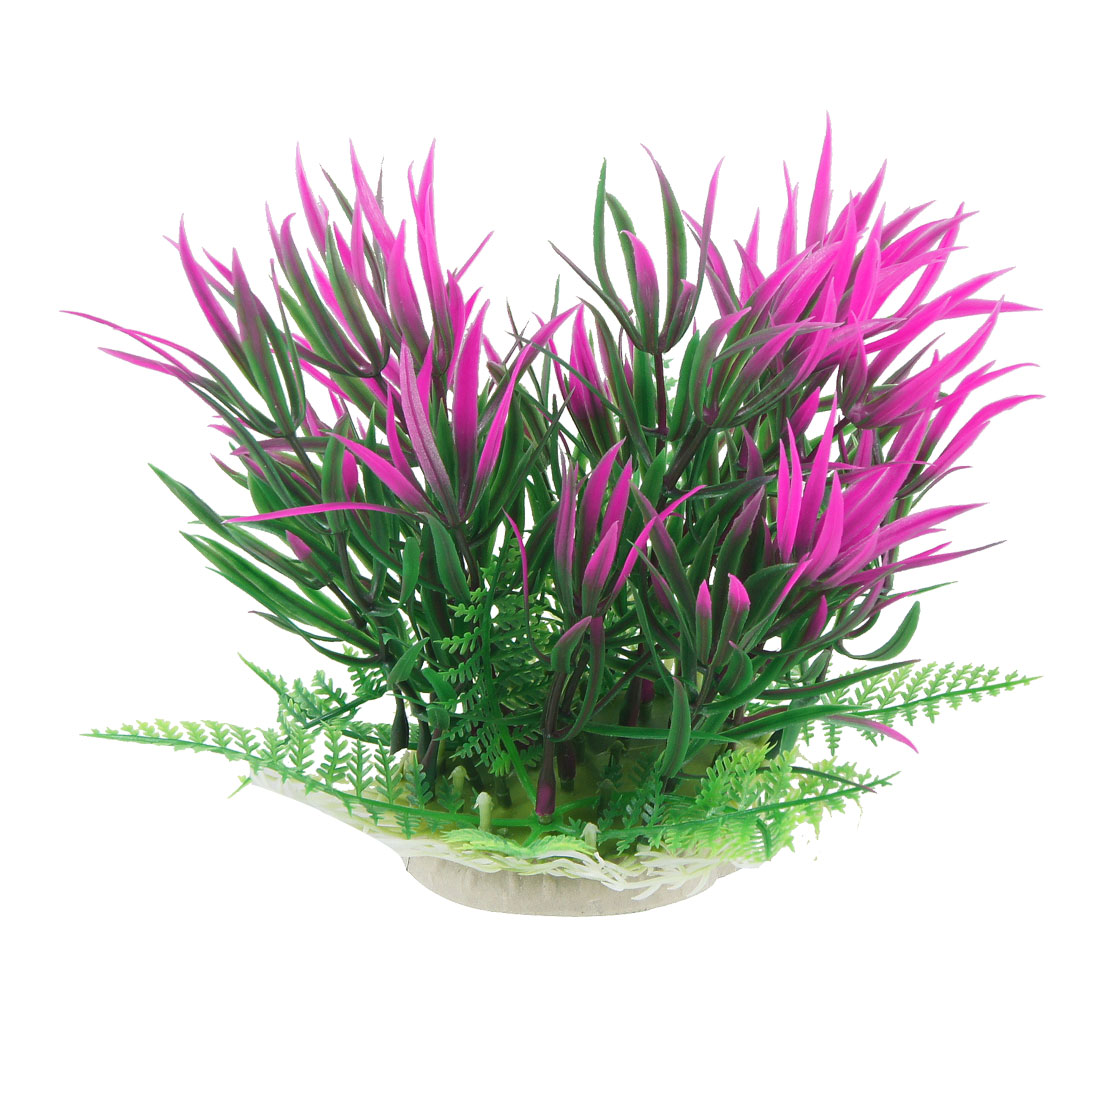 Emulational Fuchsia Green Plastic Plant Aquarium Fish Tank Decor Ornament 6.9""